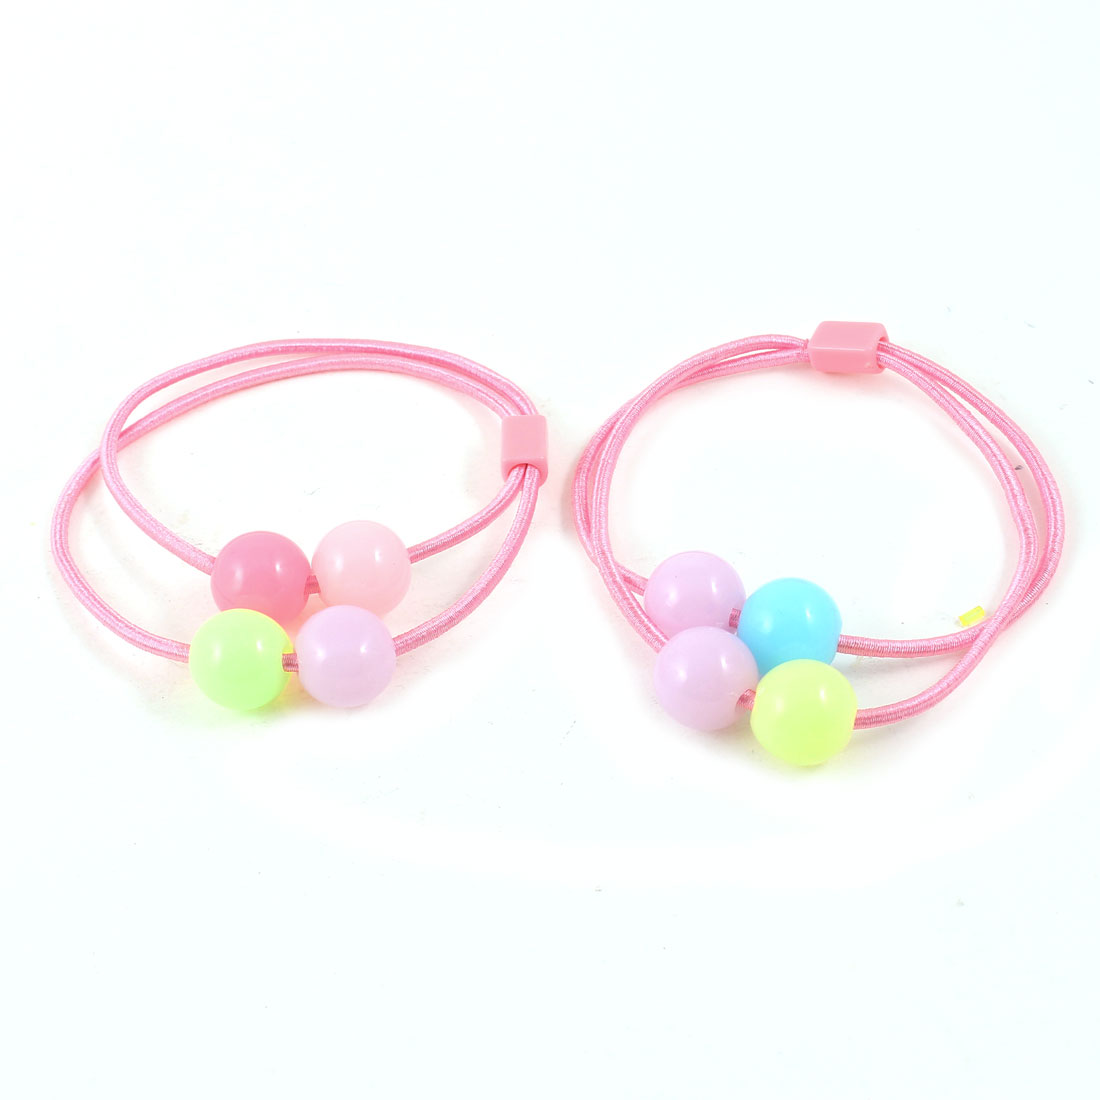 Colorful Round Beads Pink Elastic Band Hair Tie Ponytail Holder Pair